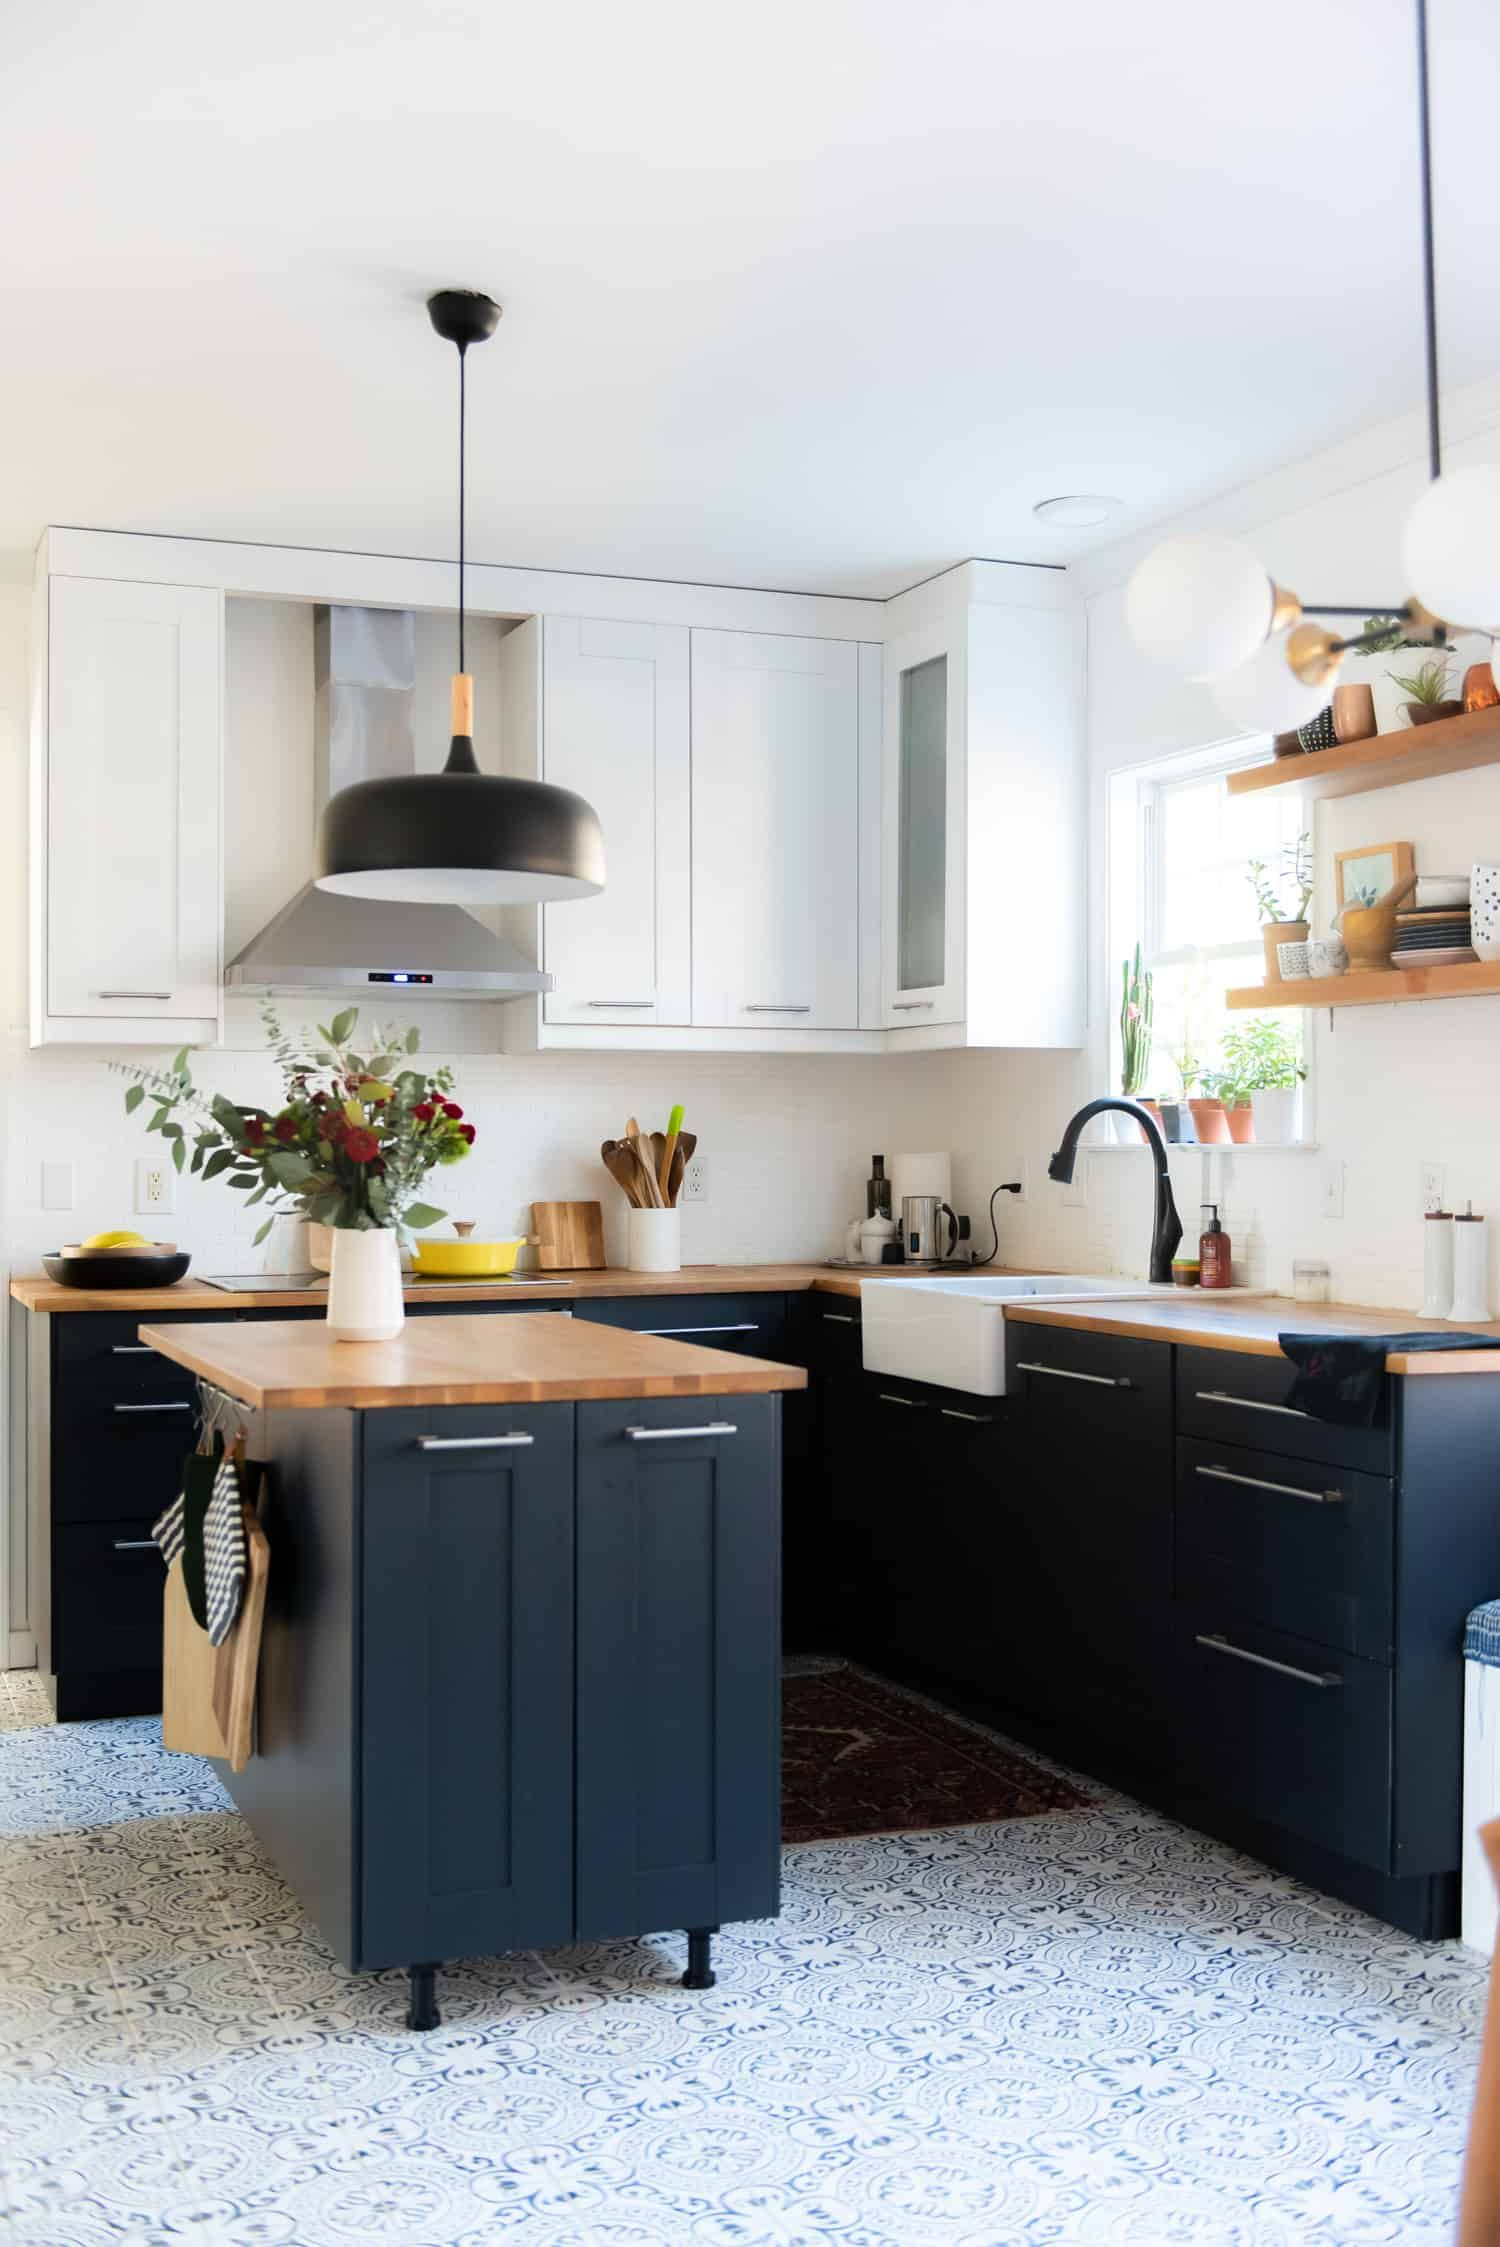 Butcher Block Countertops are so much in trend and they